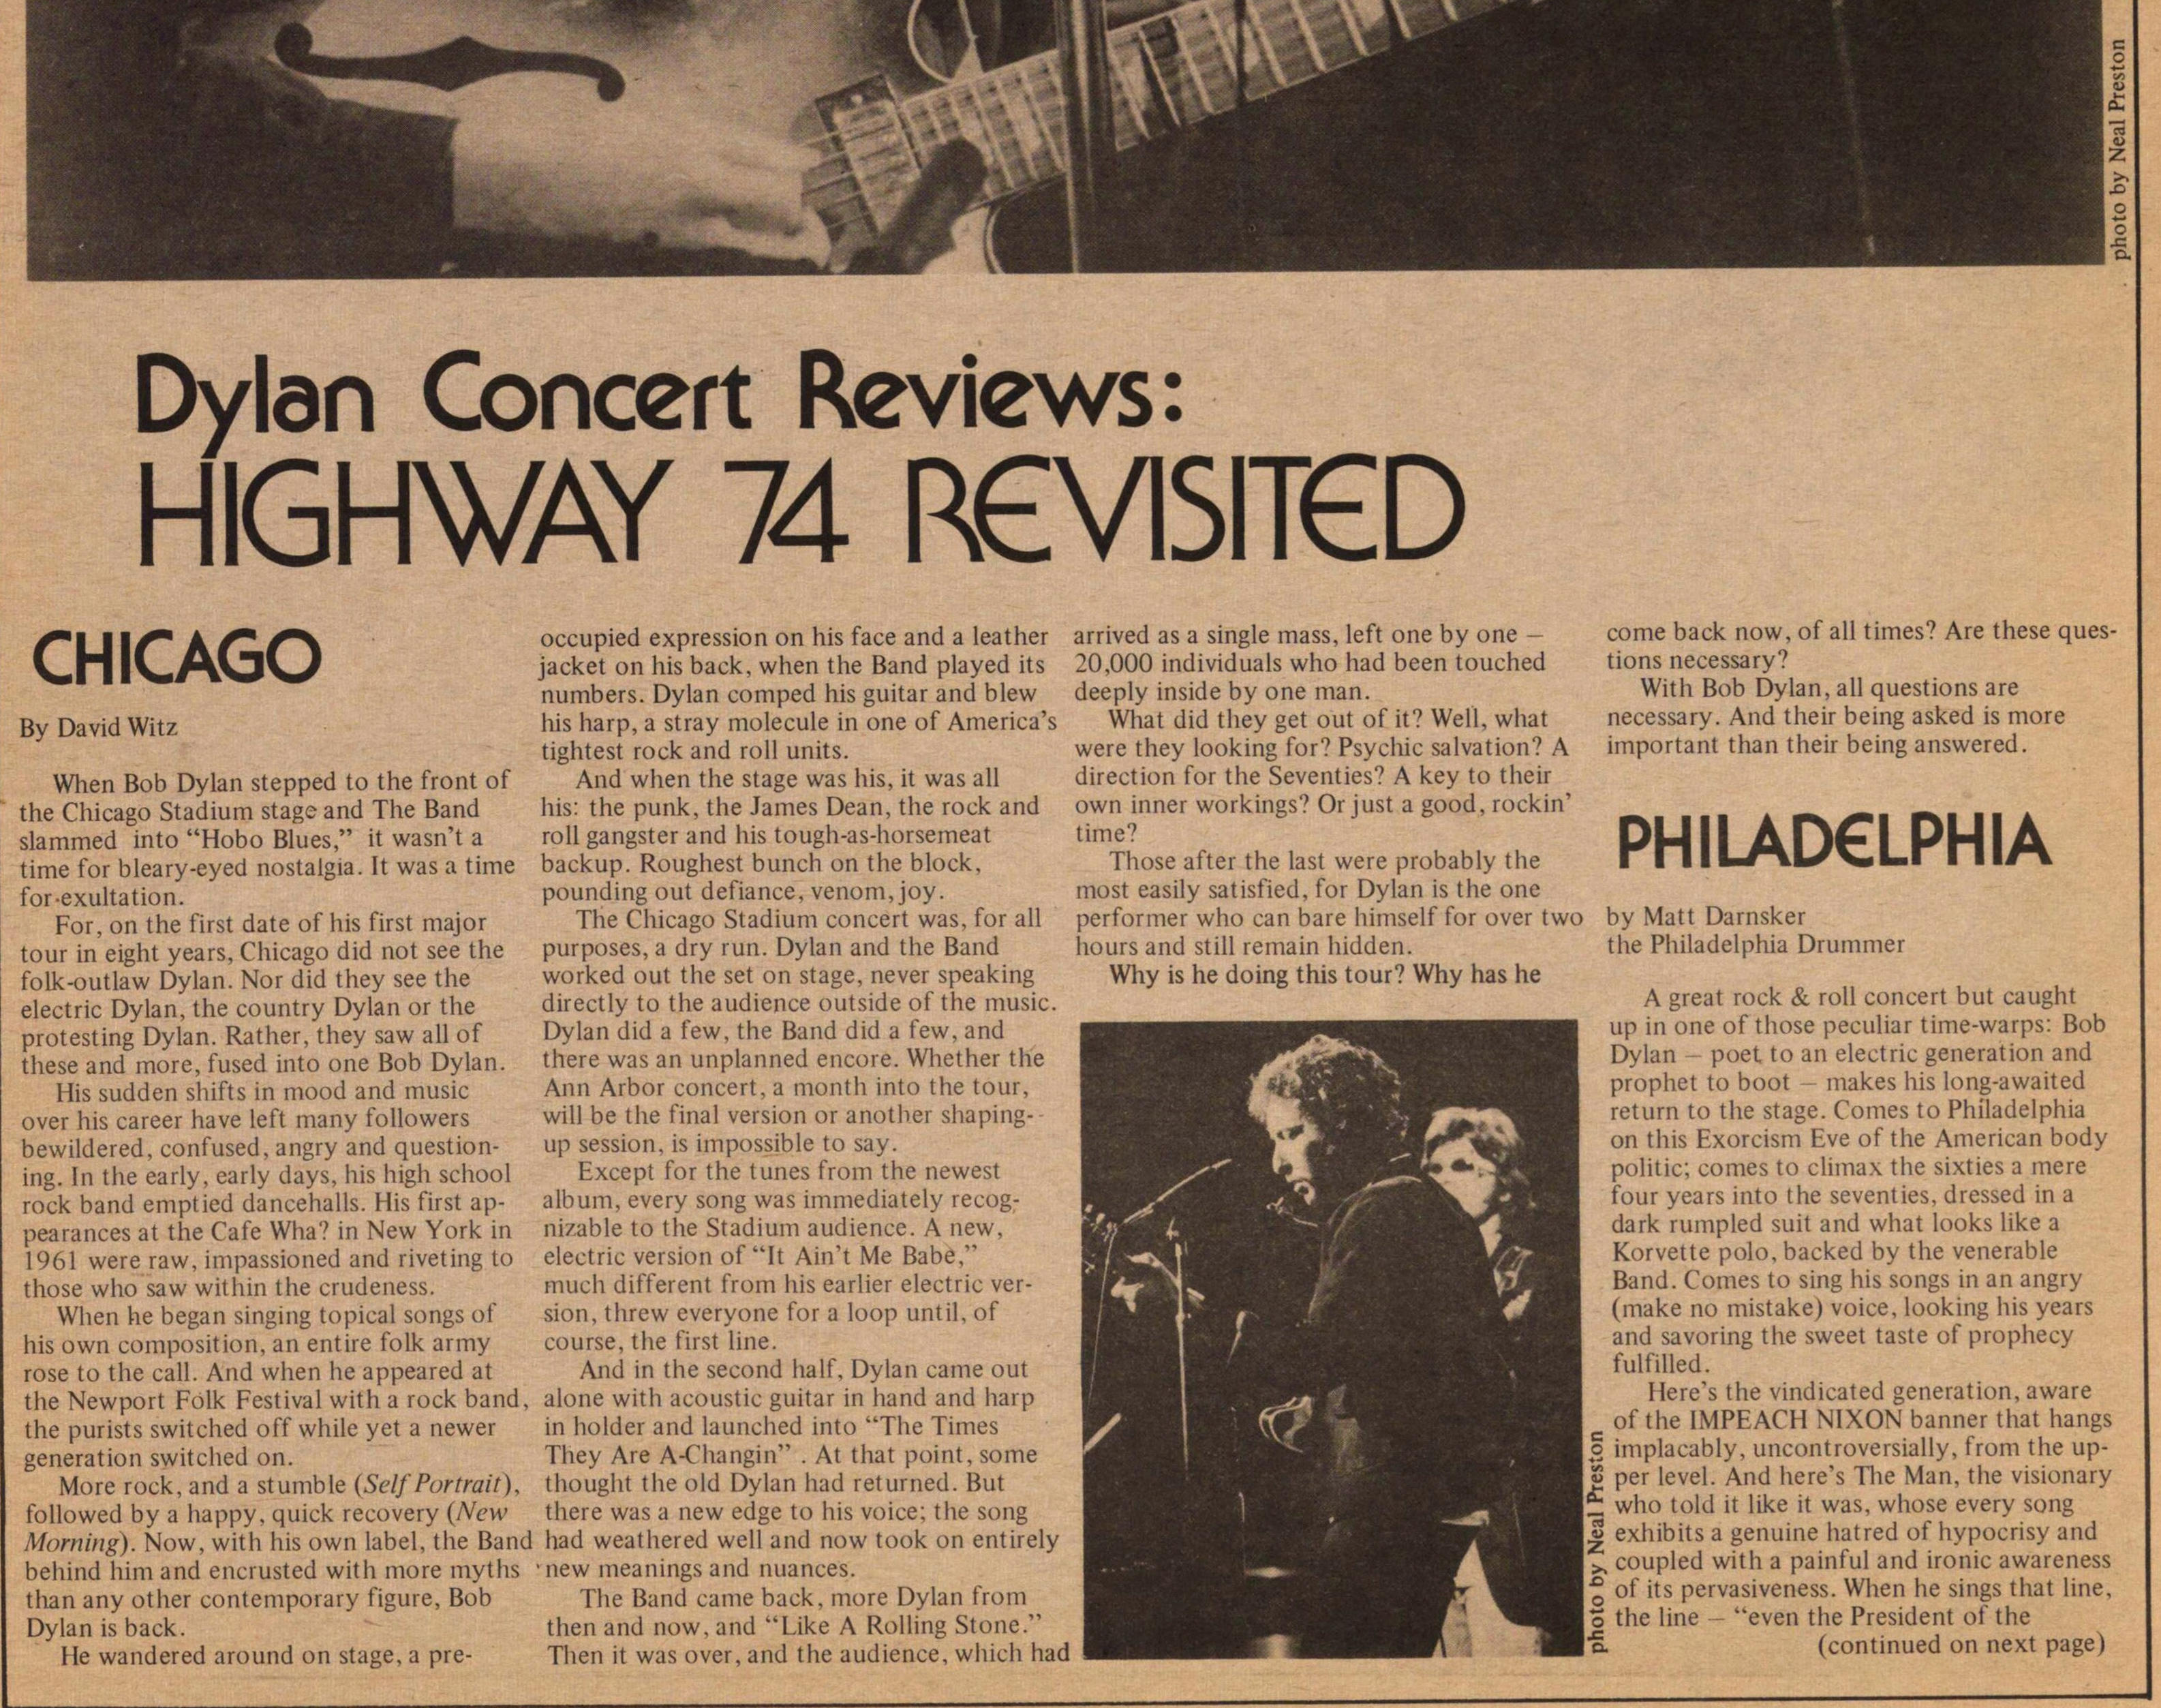 Dylan Concert Reviews: Highway 74 Revisited image